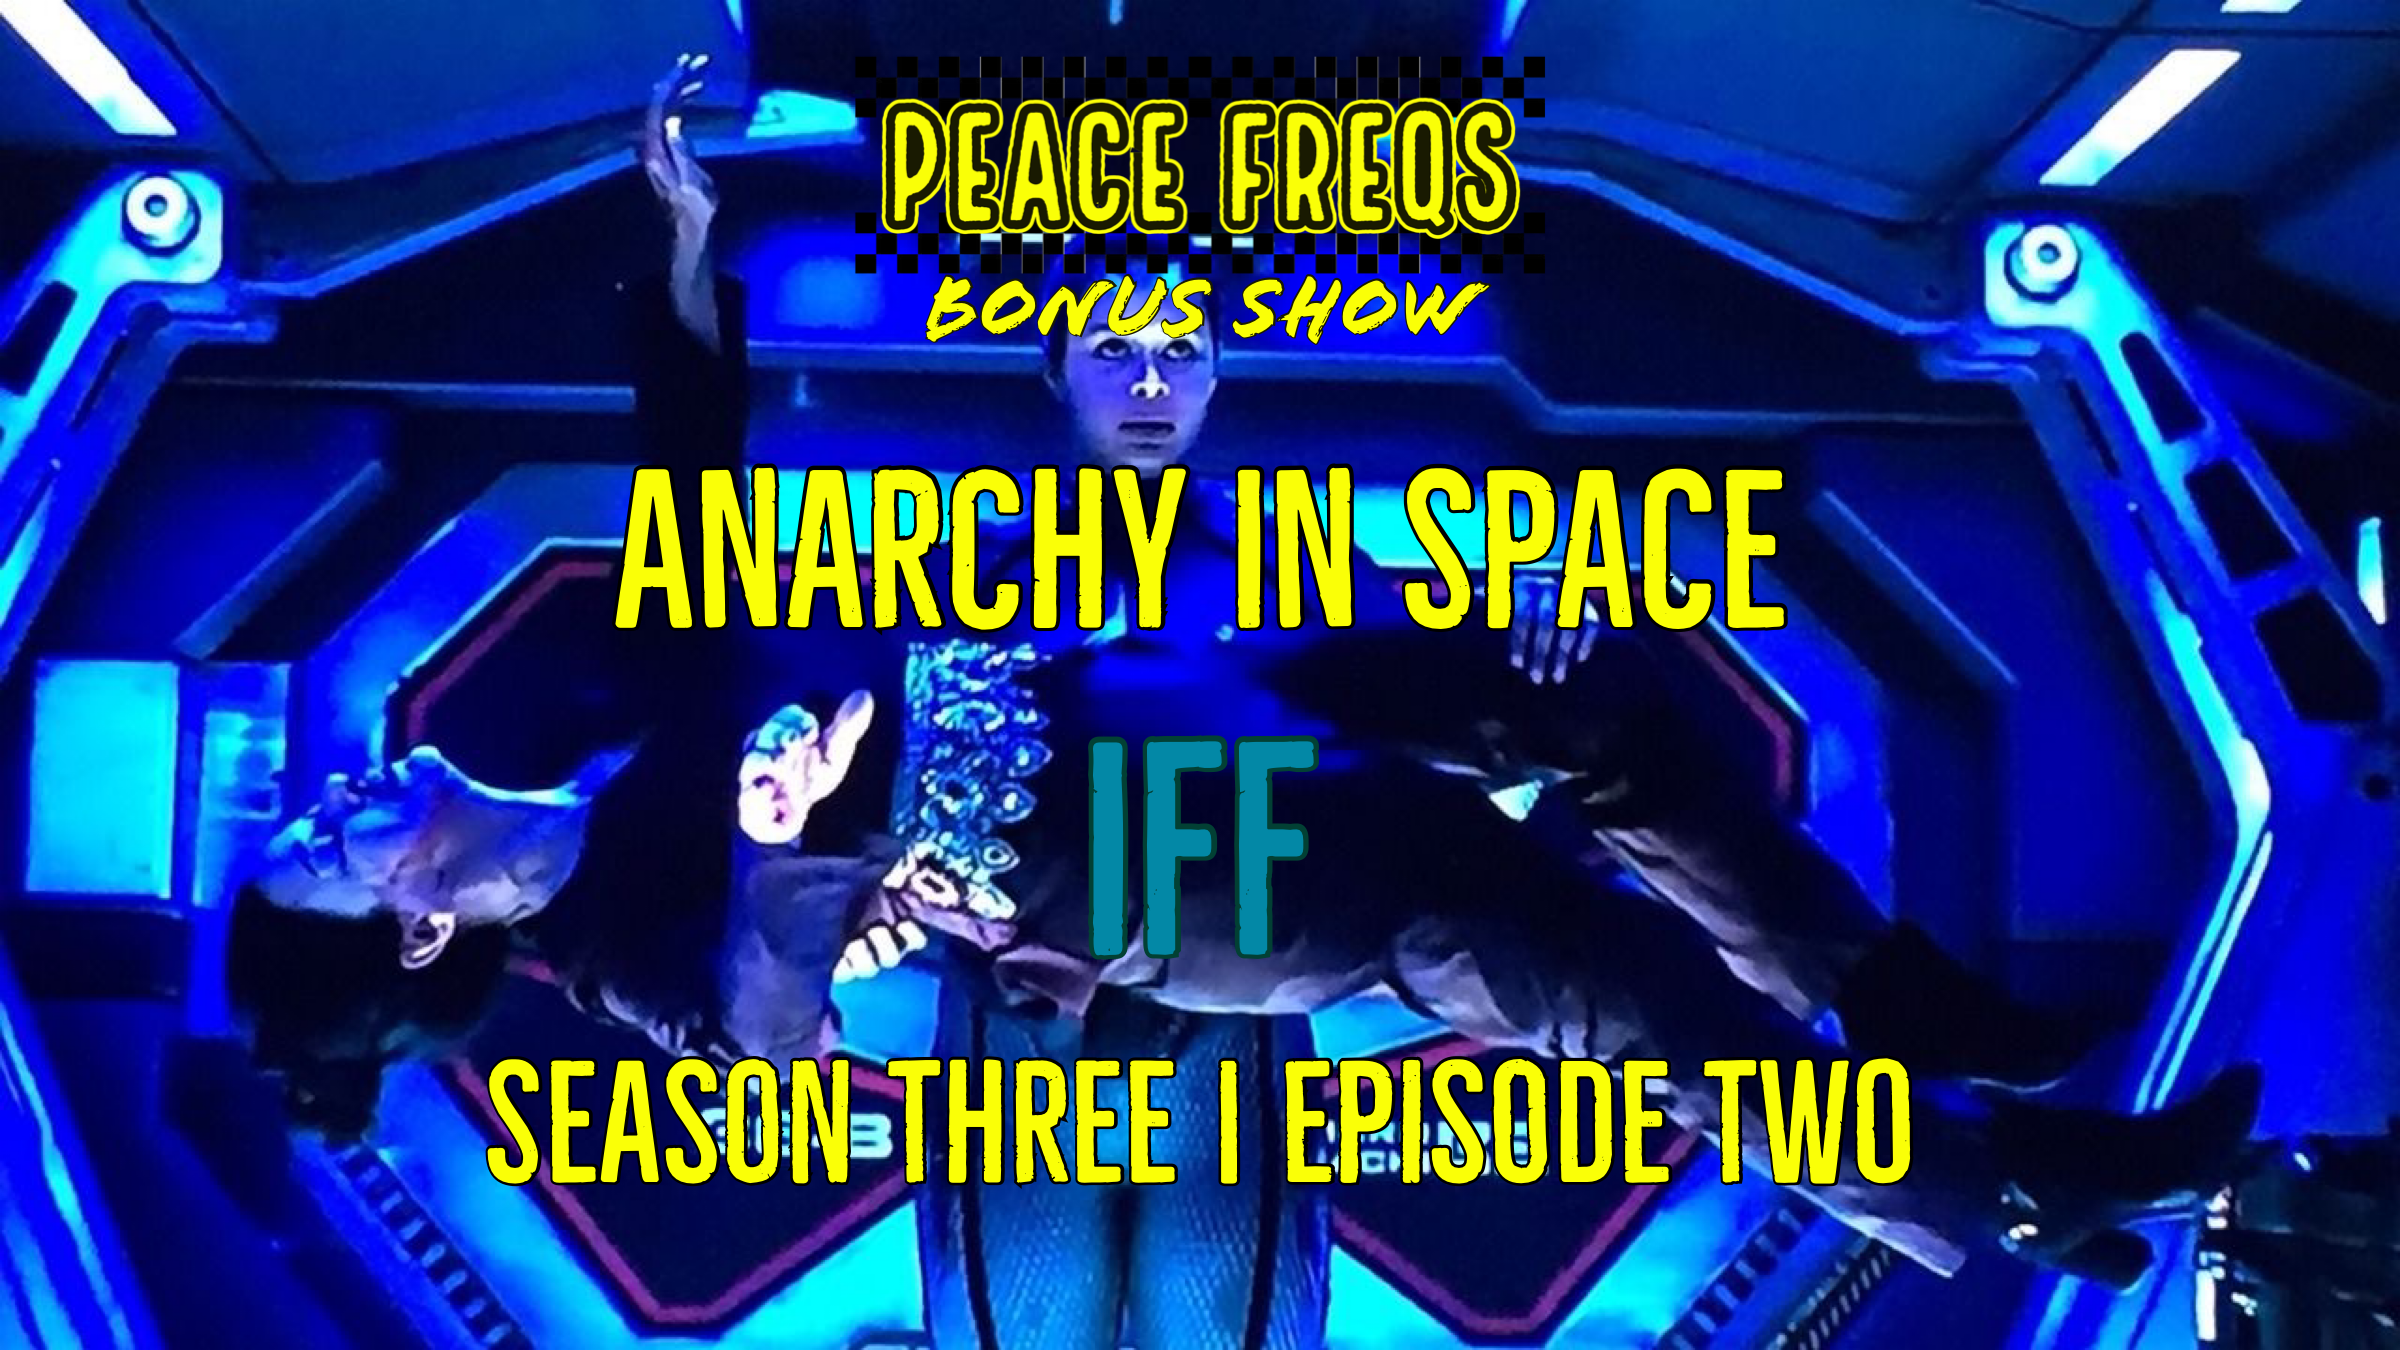 IFF Review: Analyzing The Expanse - Anarchy In Space 025 Title Card